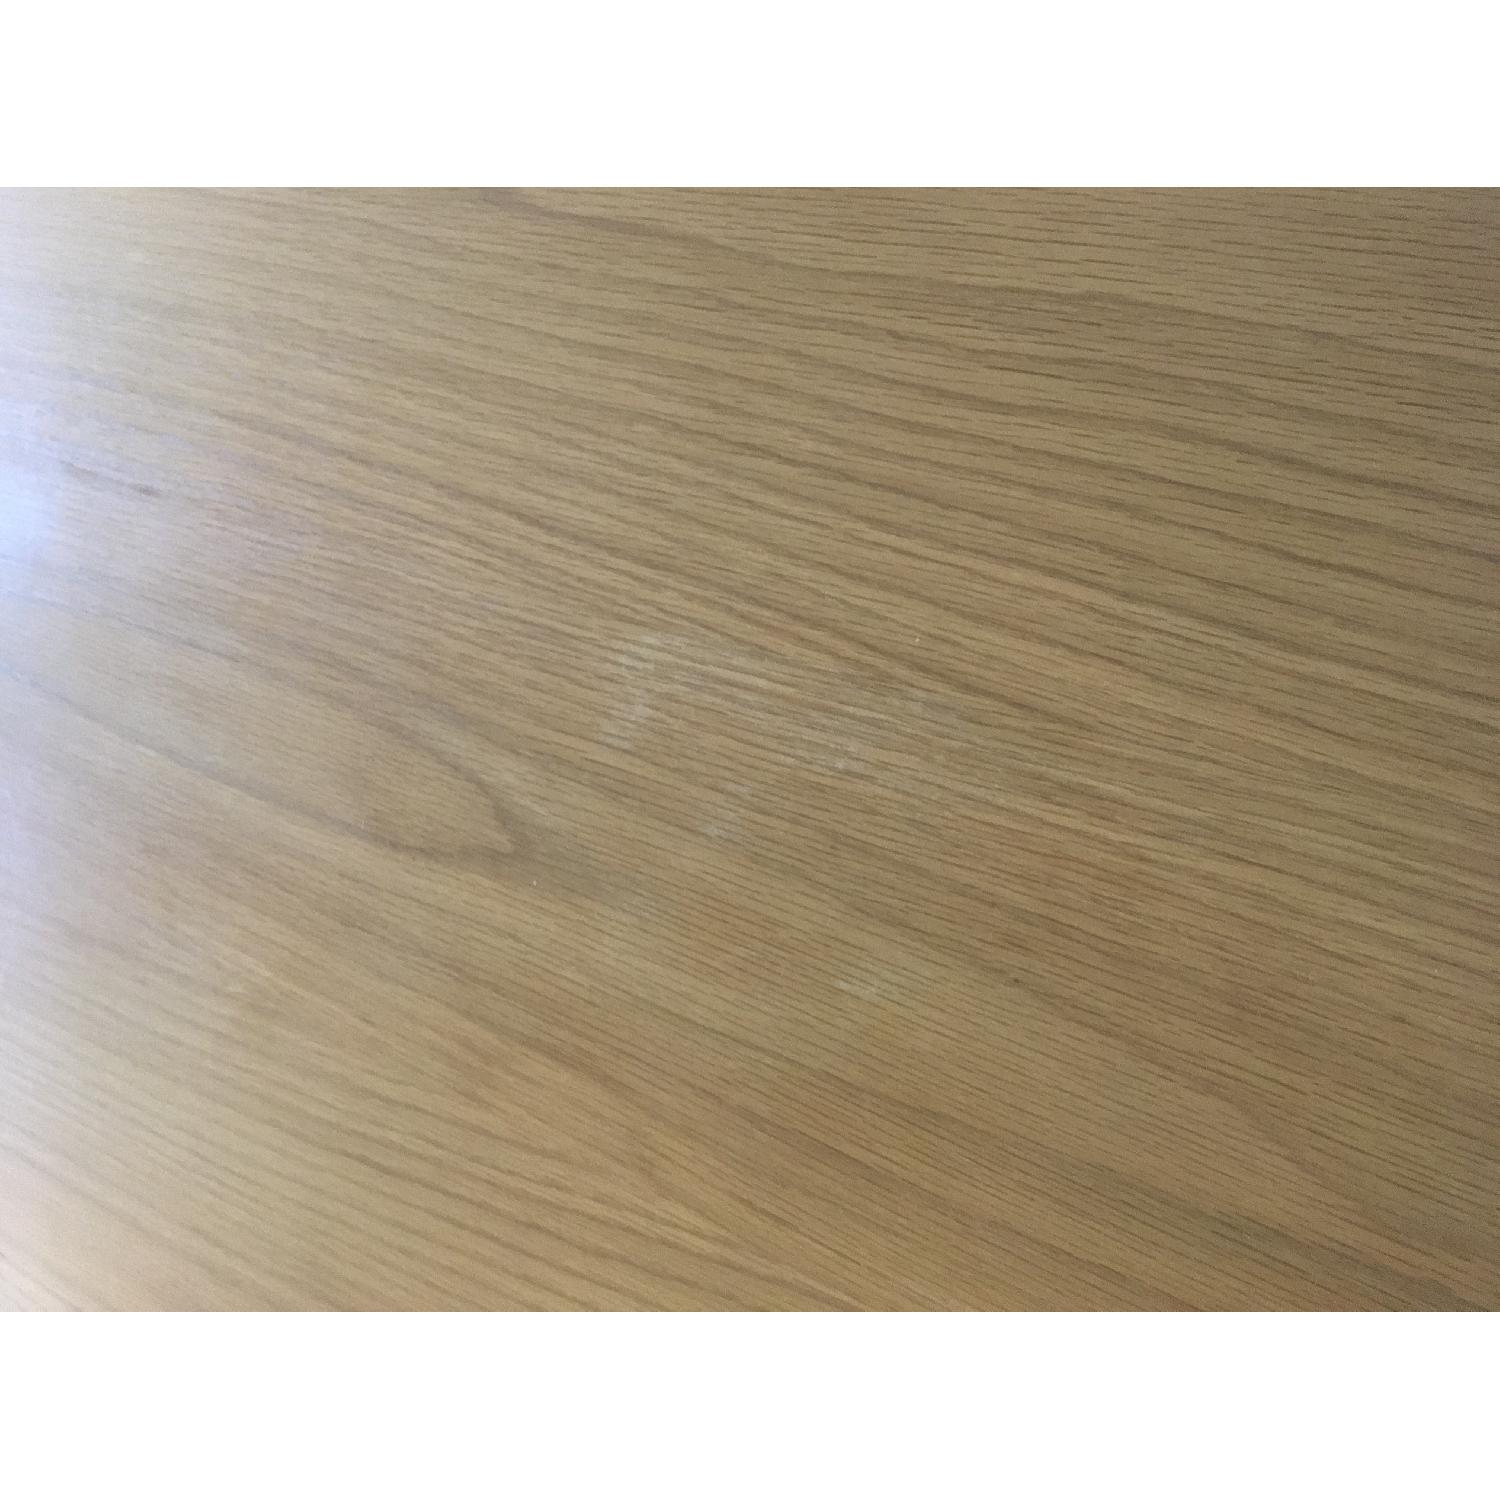 West Elm Wood Dining Table - image-3